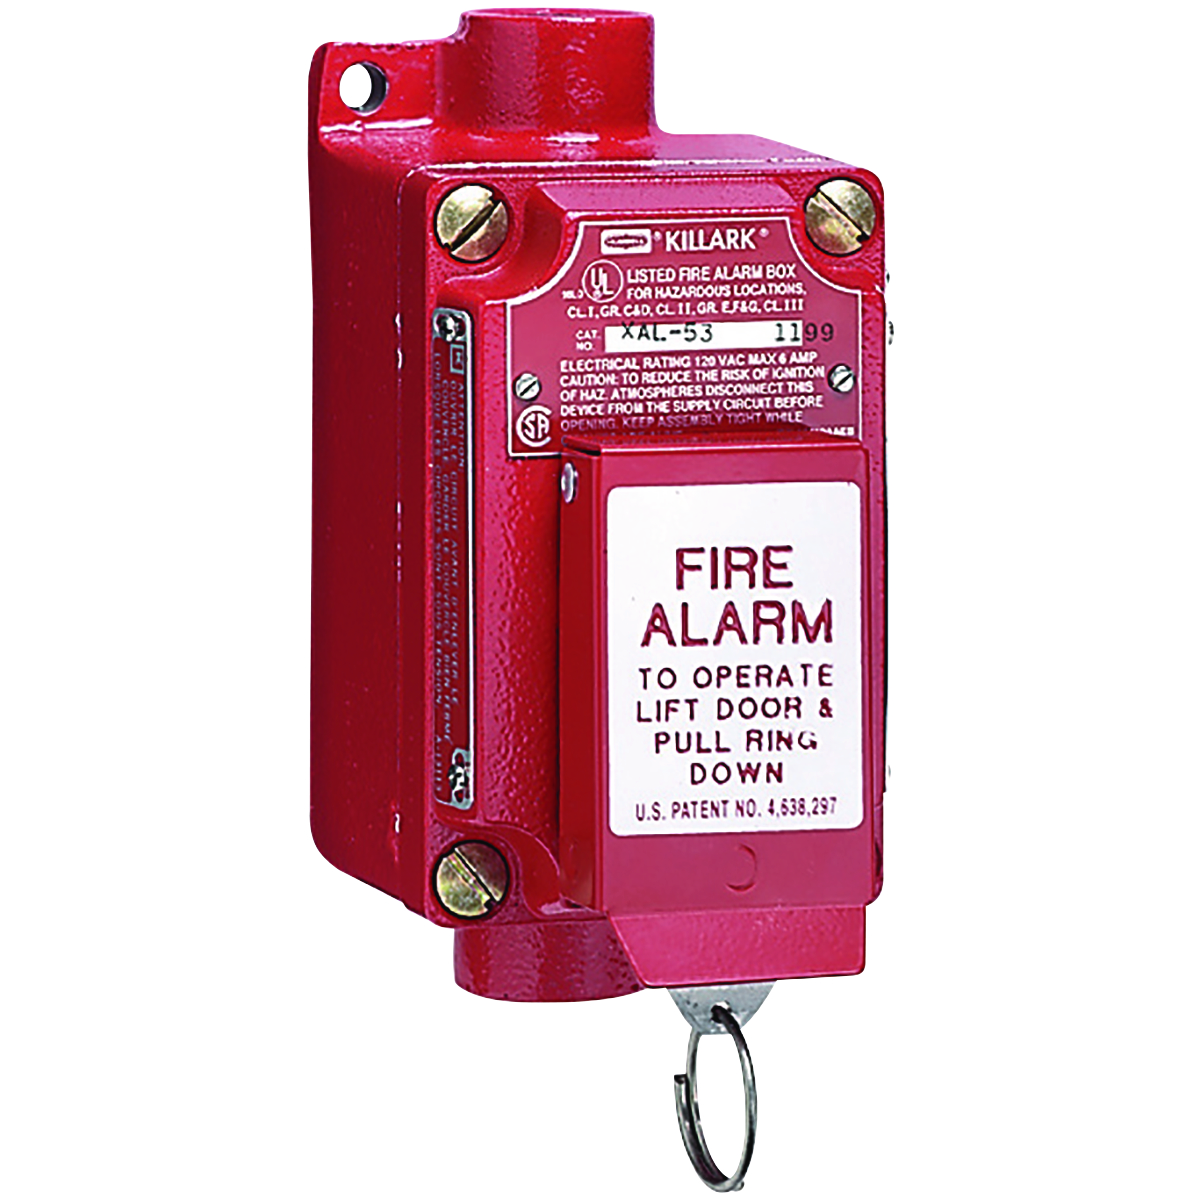 Hubbell XAL-53 Fire Alarm Station